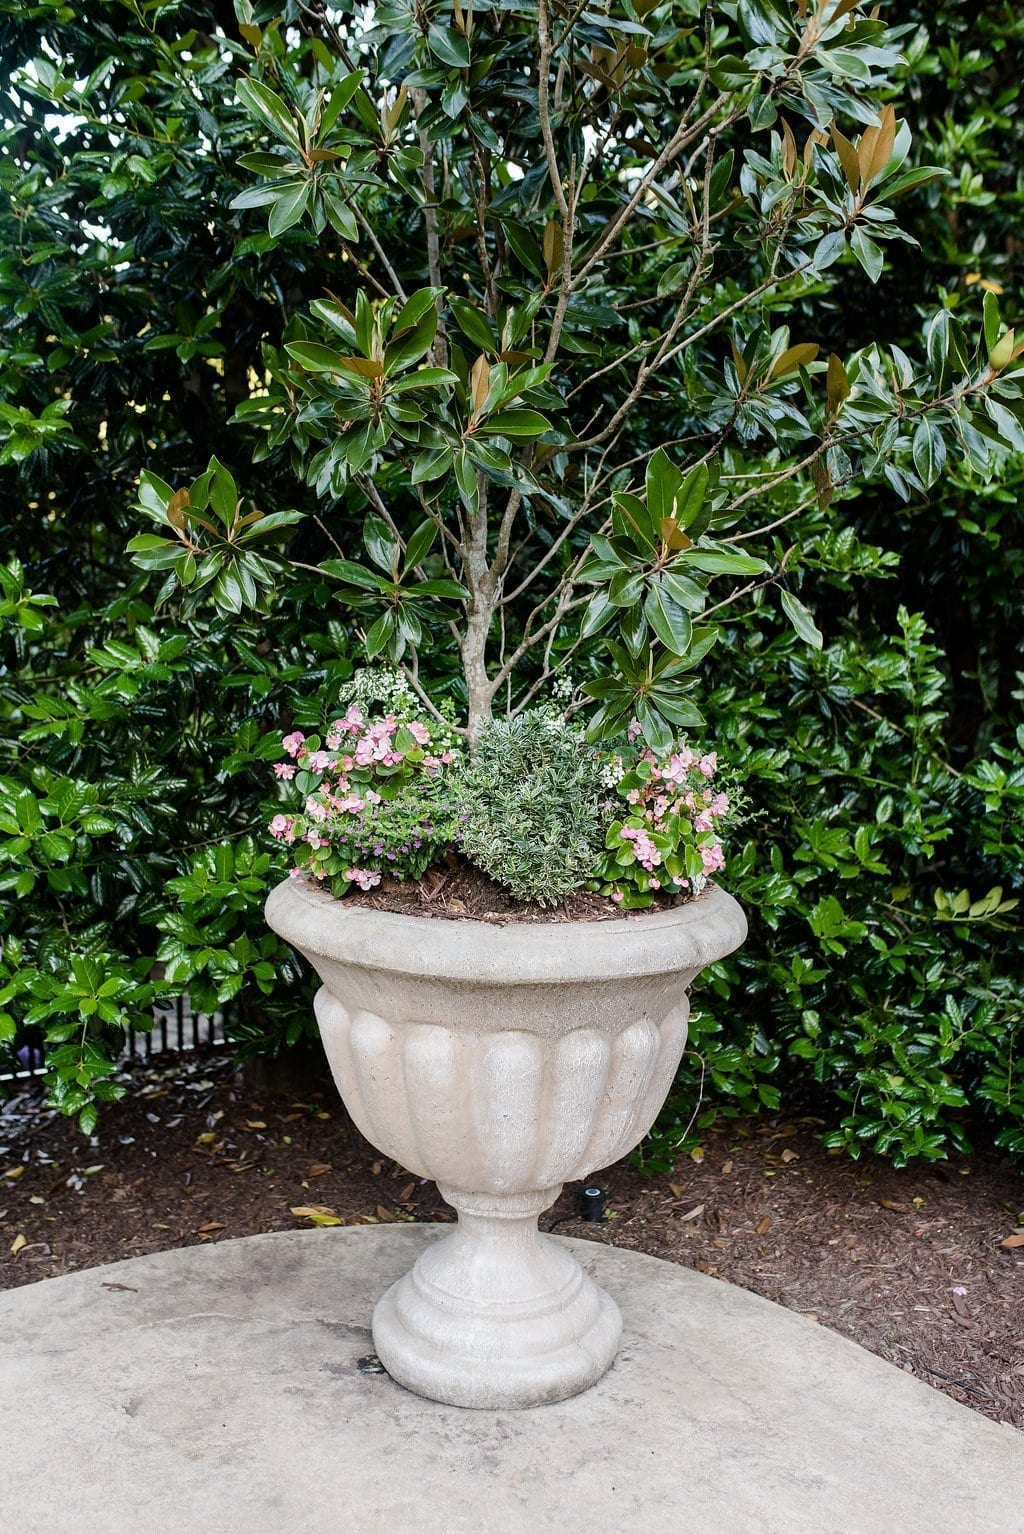 Magnolia Gem tree in planter.